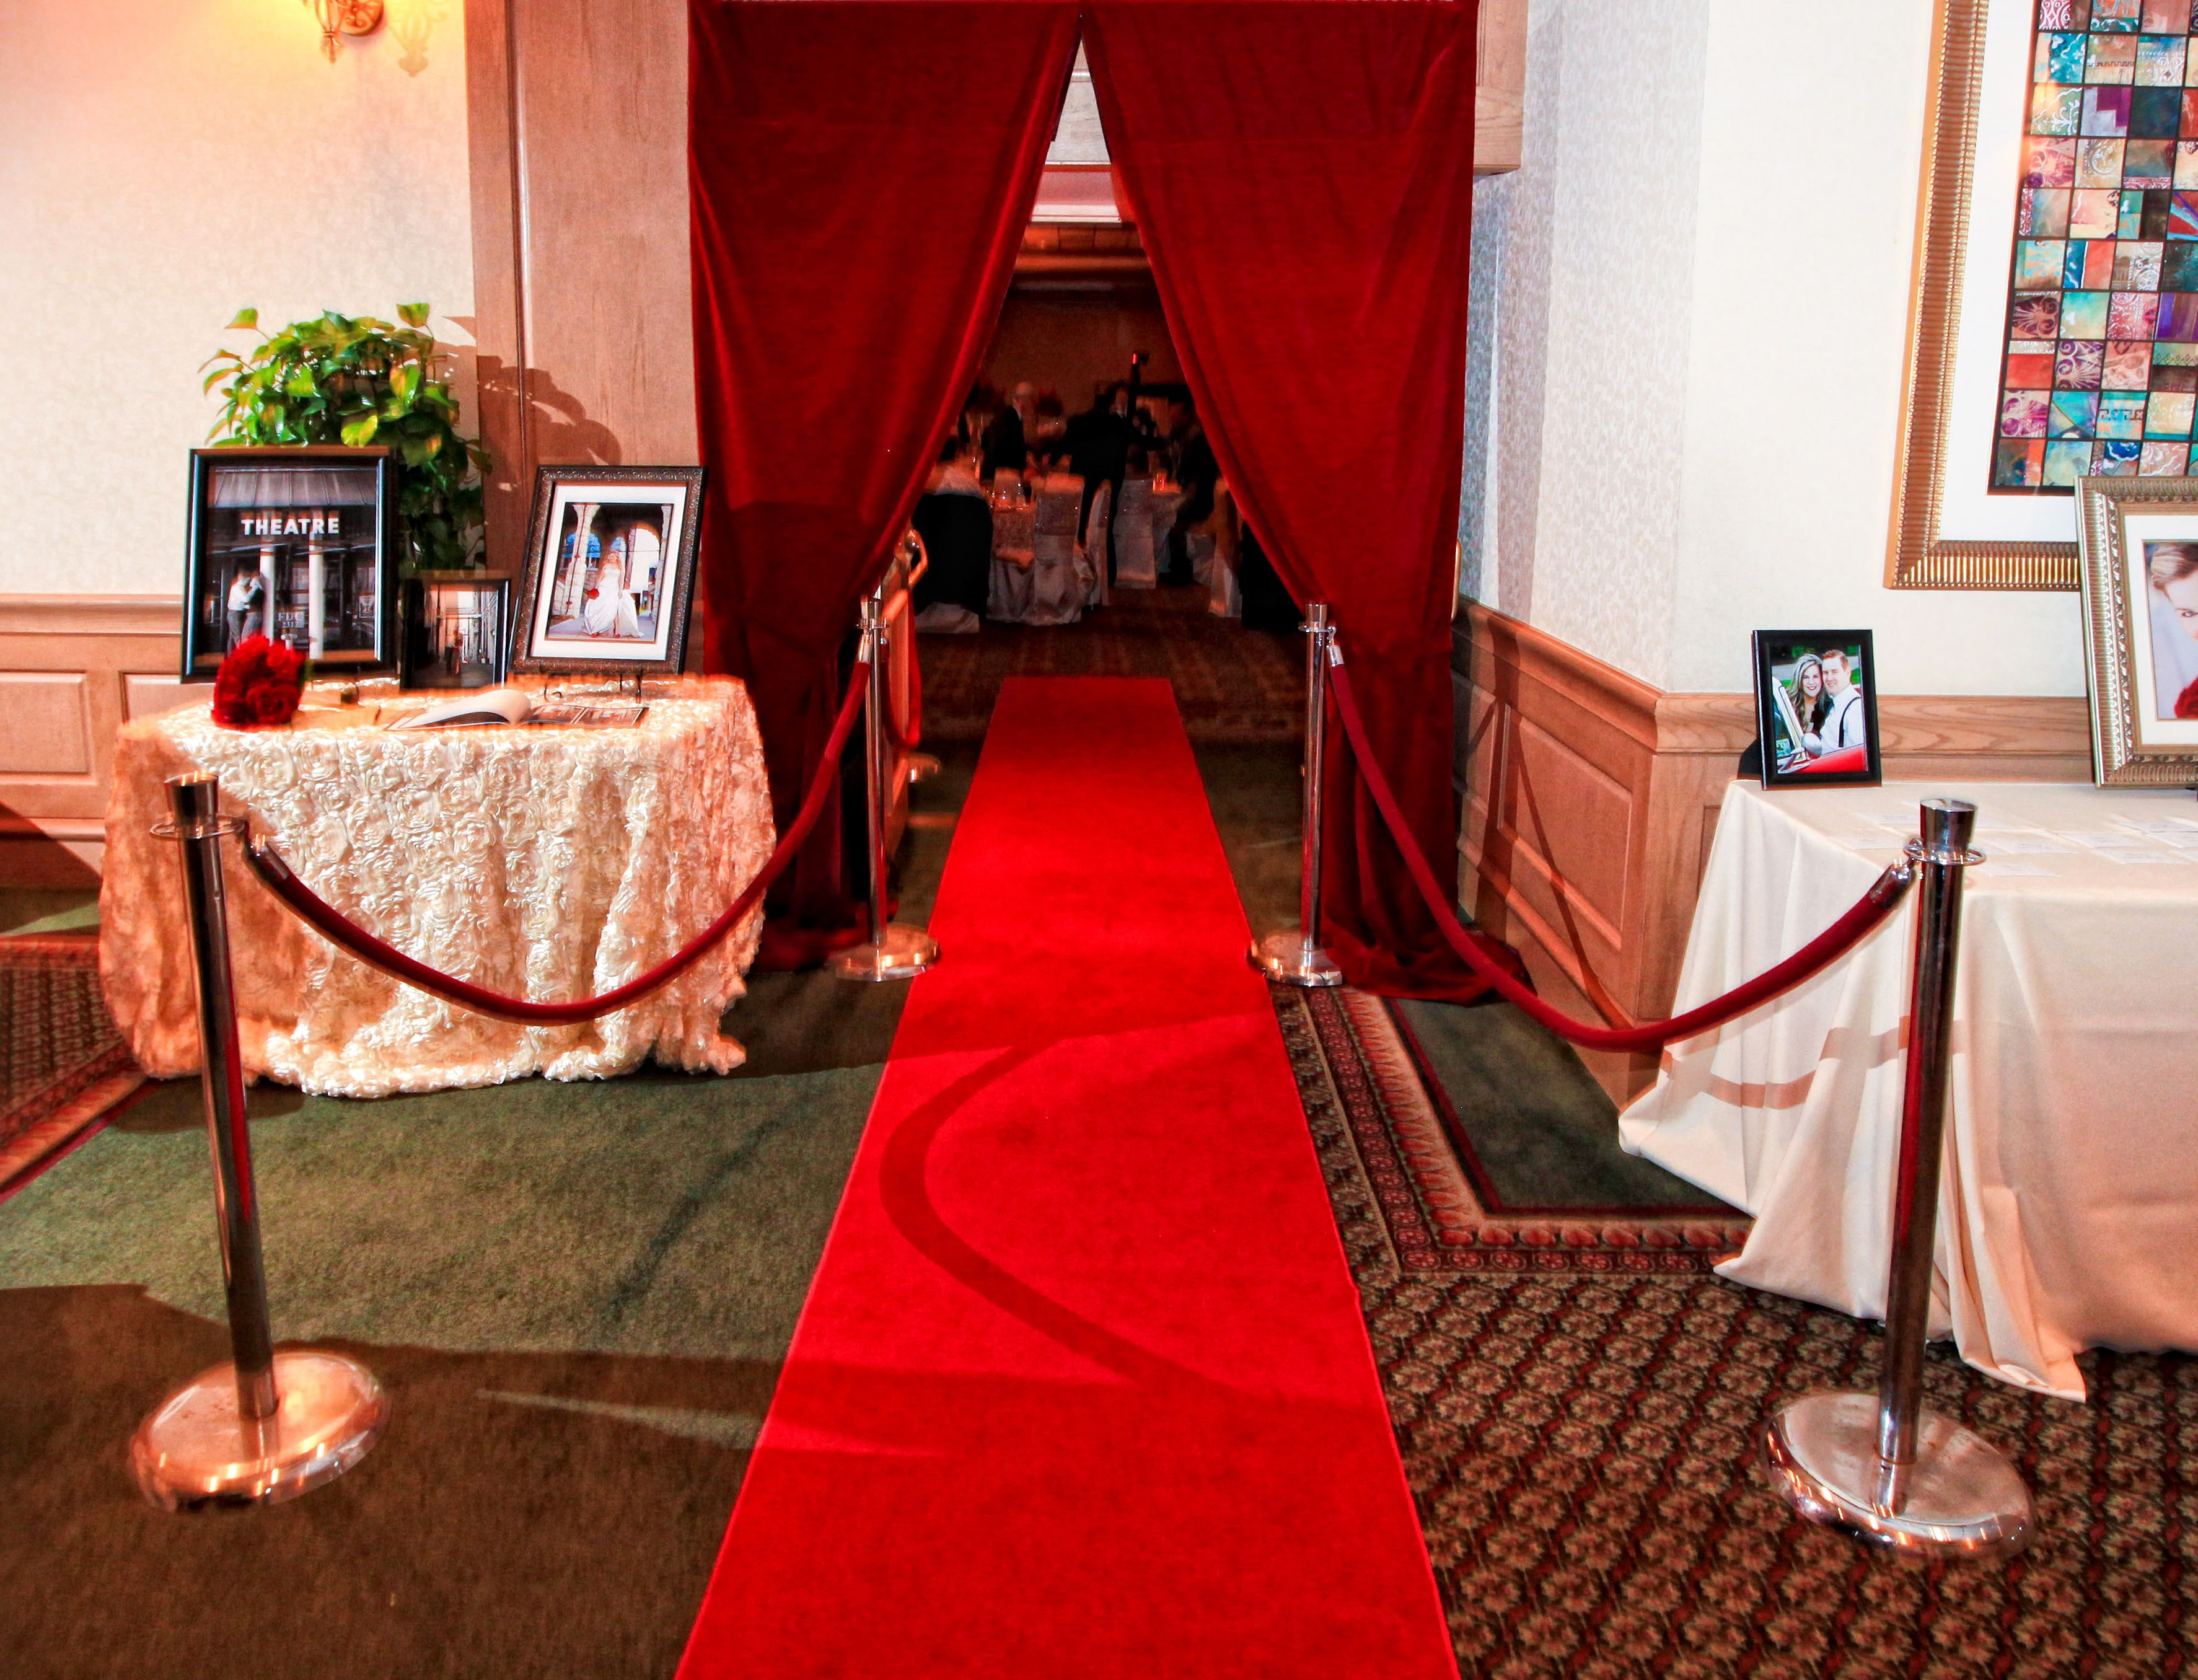 Wedding Red Carpet Entrance With Images Red Carpet Wedding